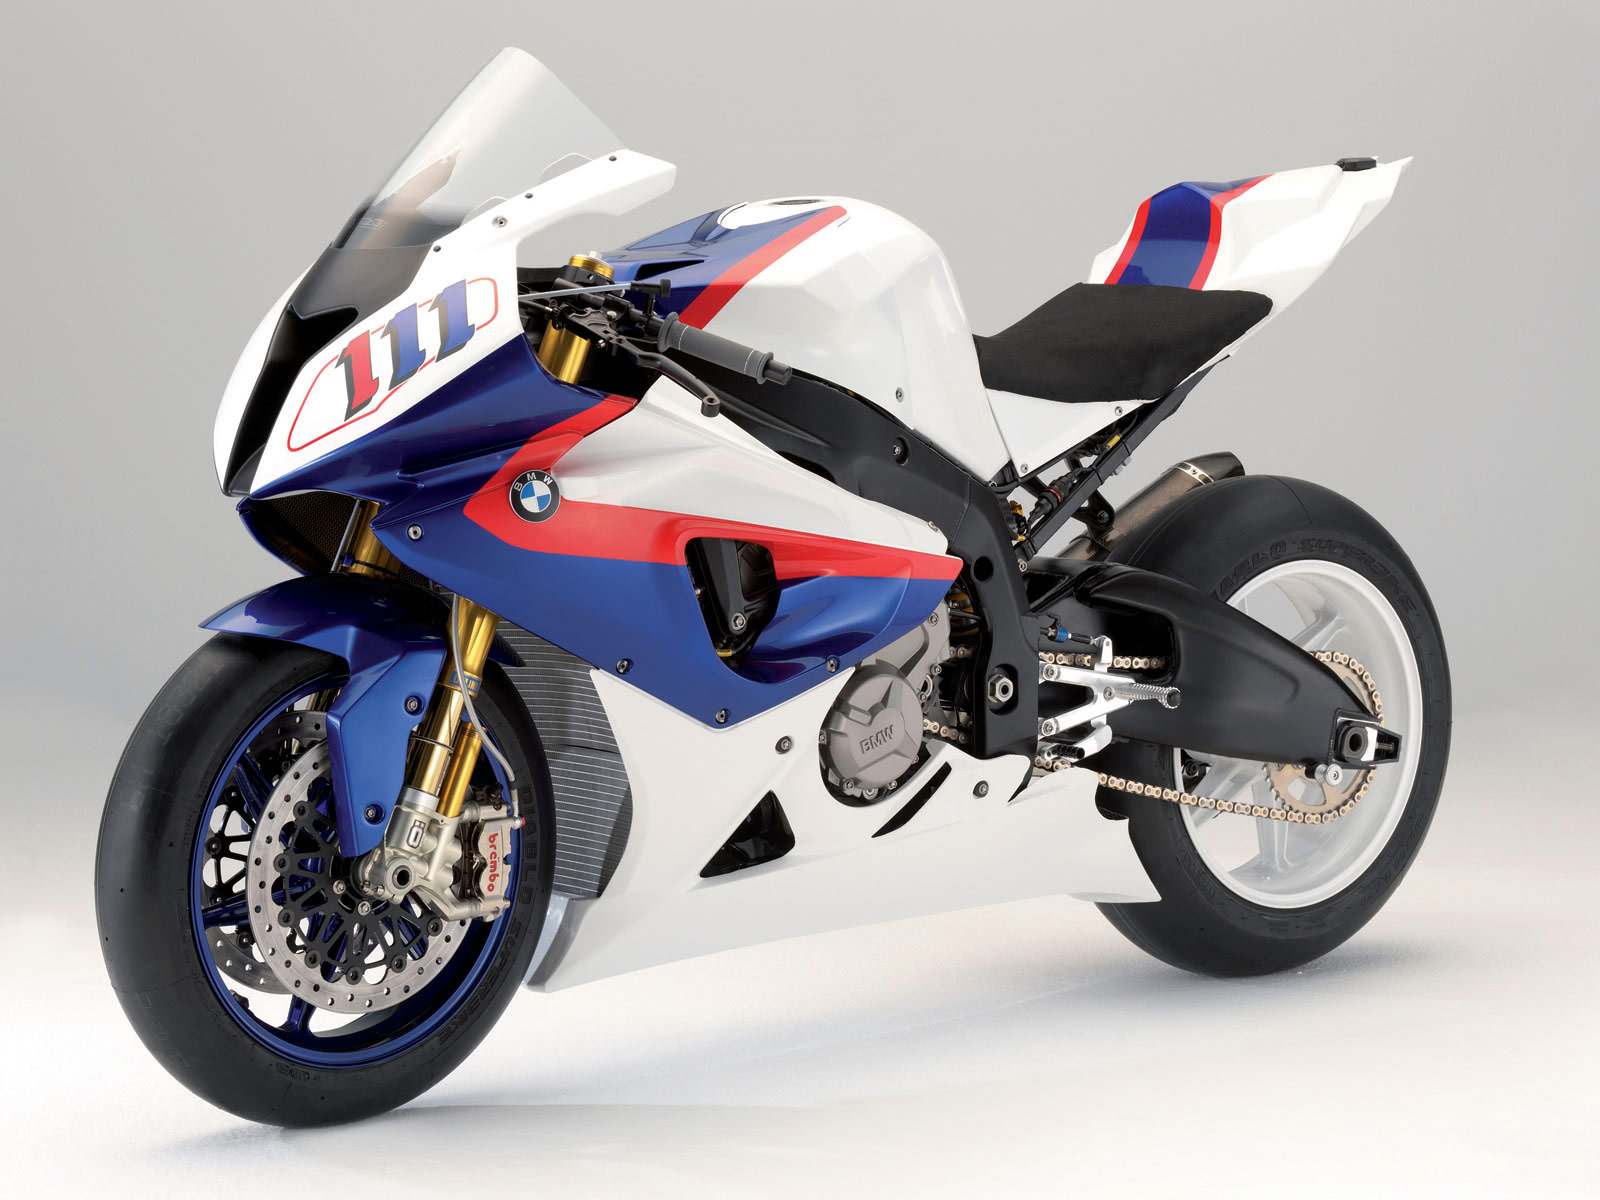 Bmw S1000rr - All Years and Modifications with reviews, msrp ...